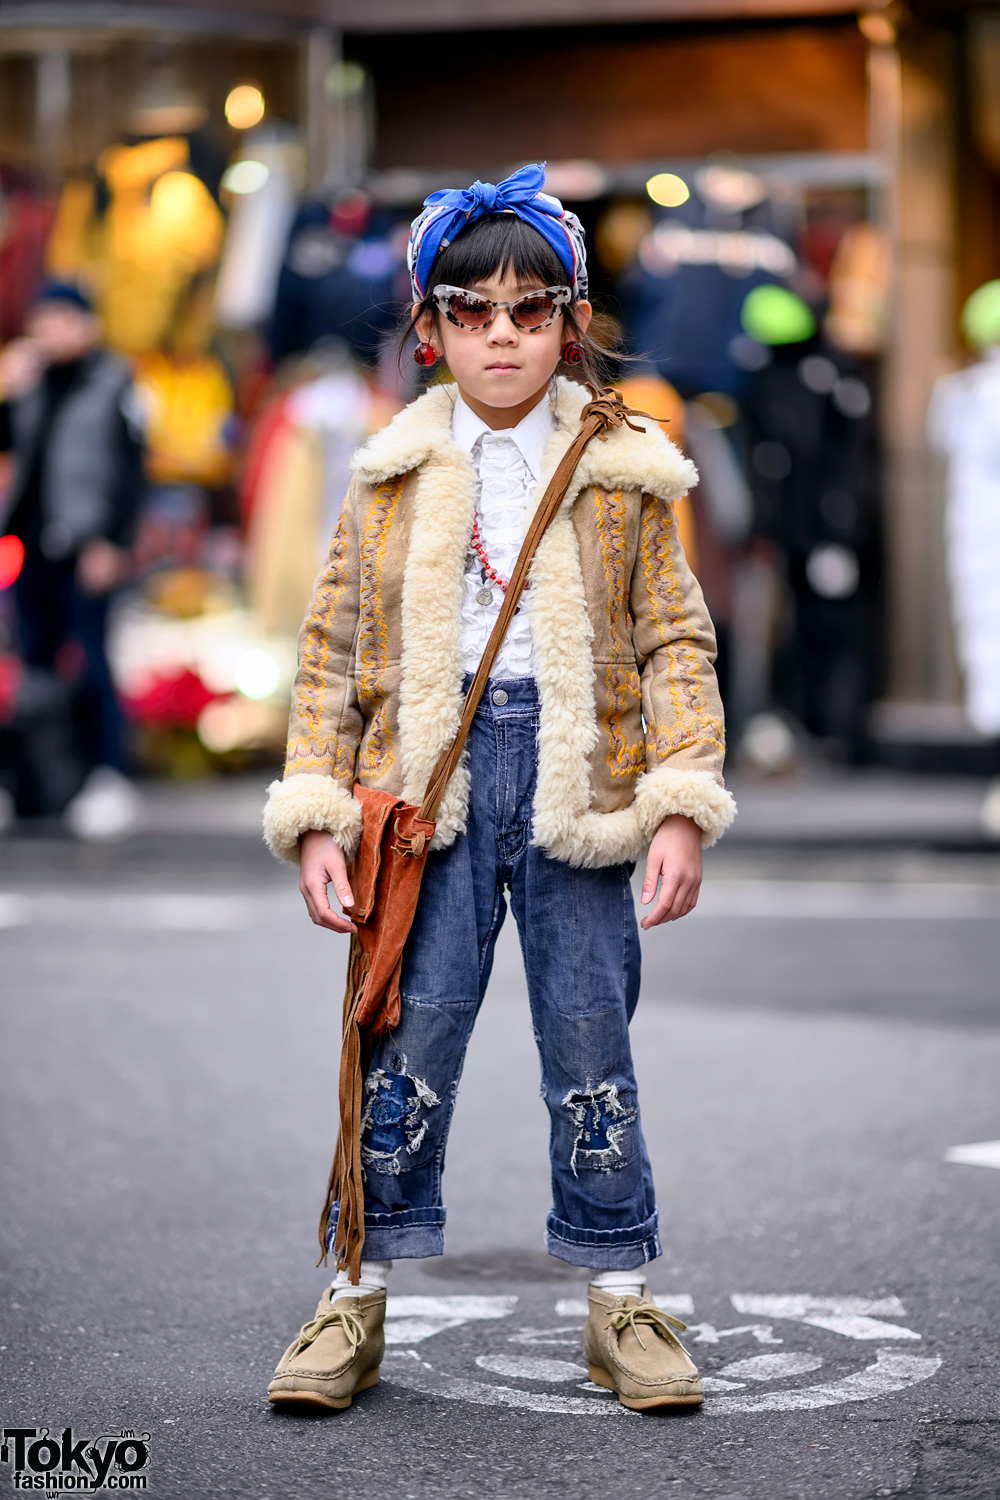 13+ Kids Fashion